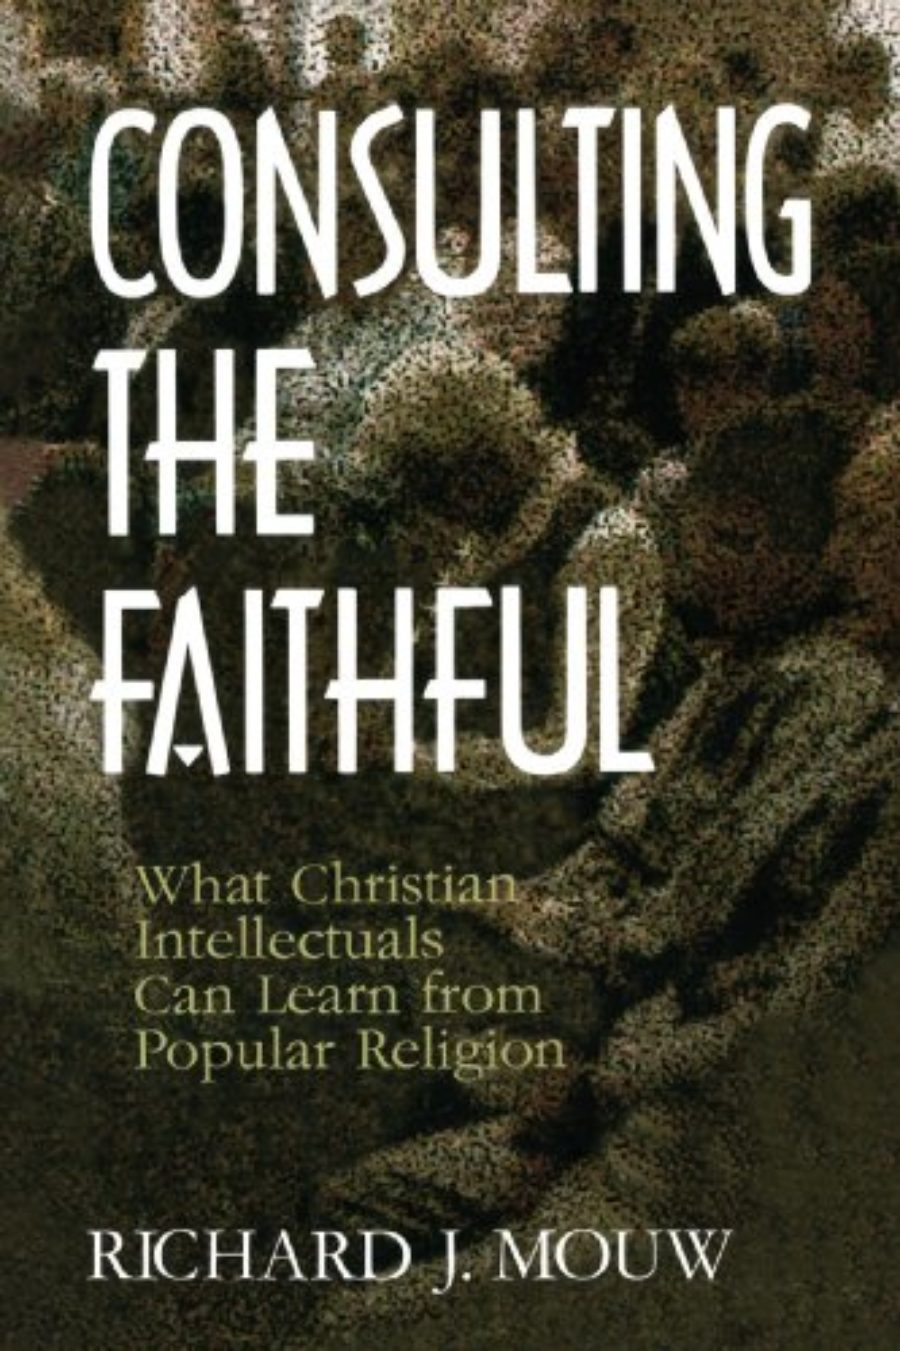 Cover of Consulting the Faithful: What Christian Intellectuals Can Learn from Popular Religion